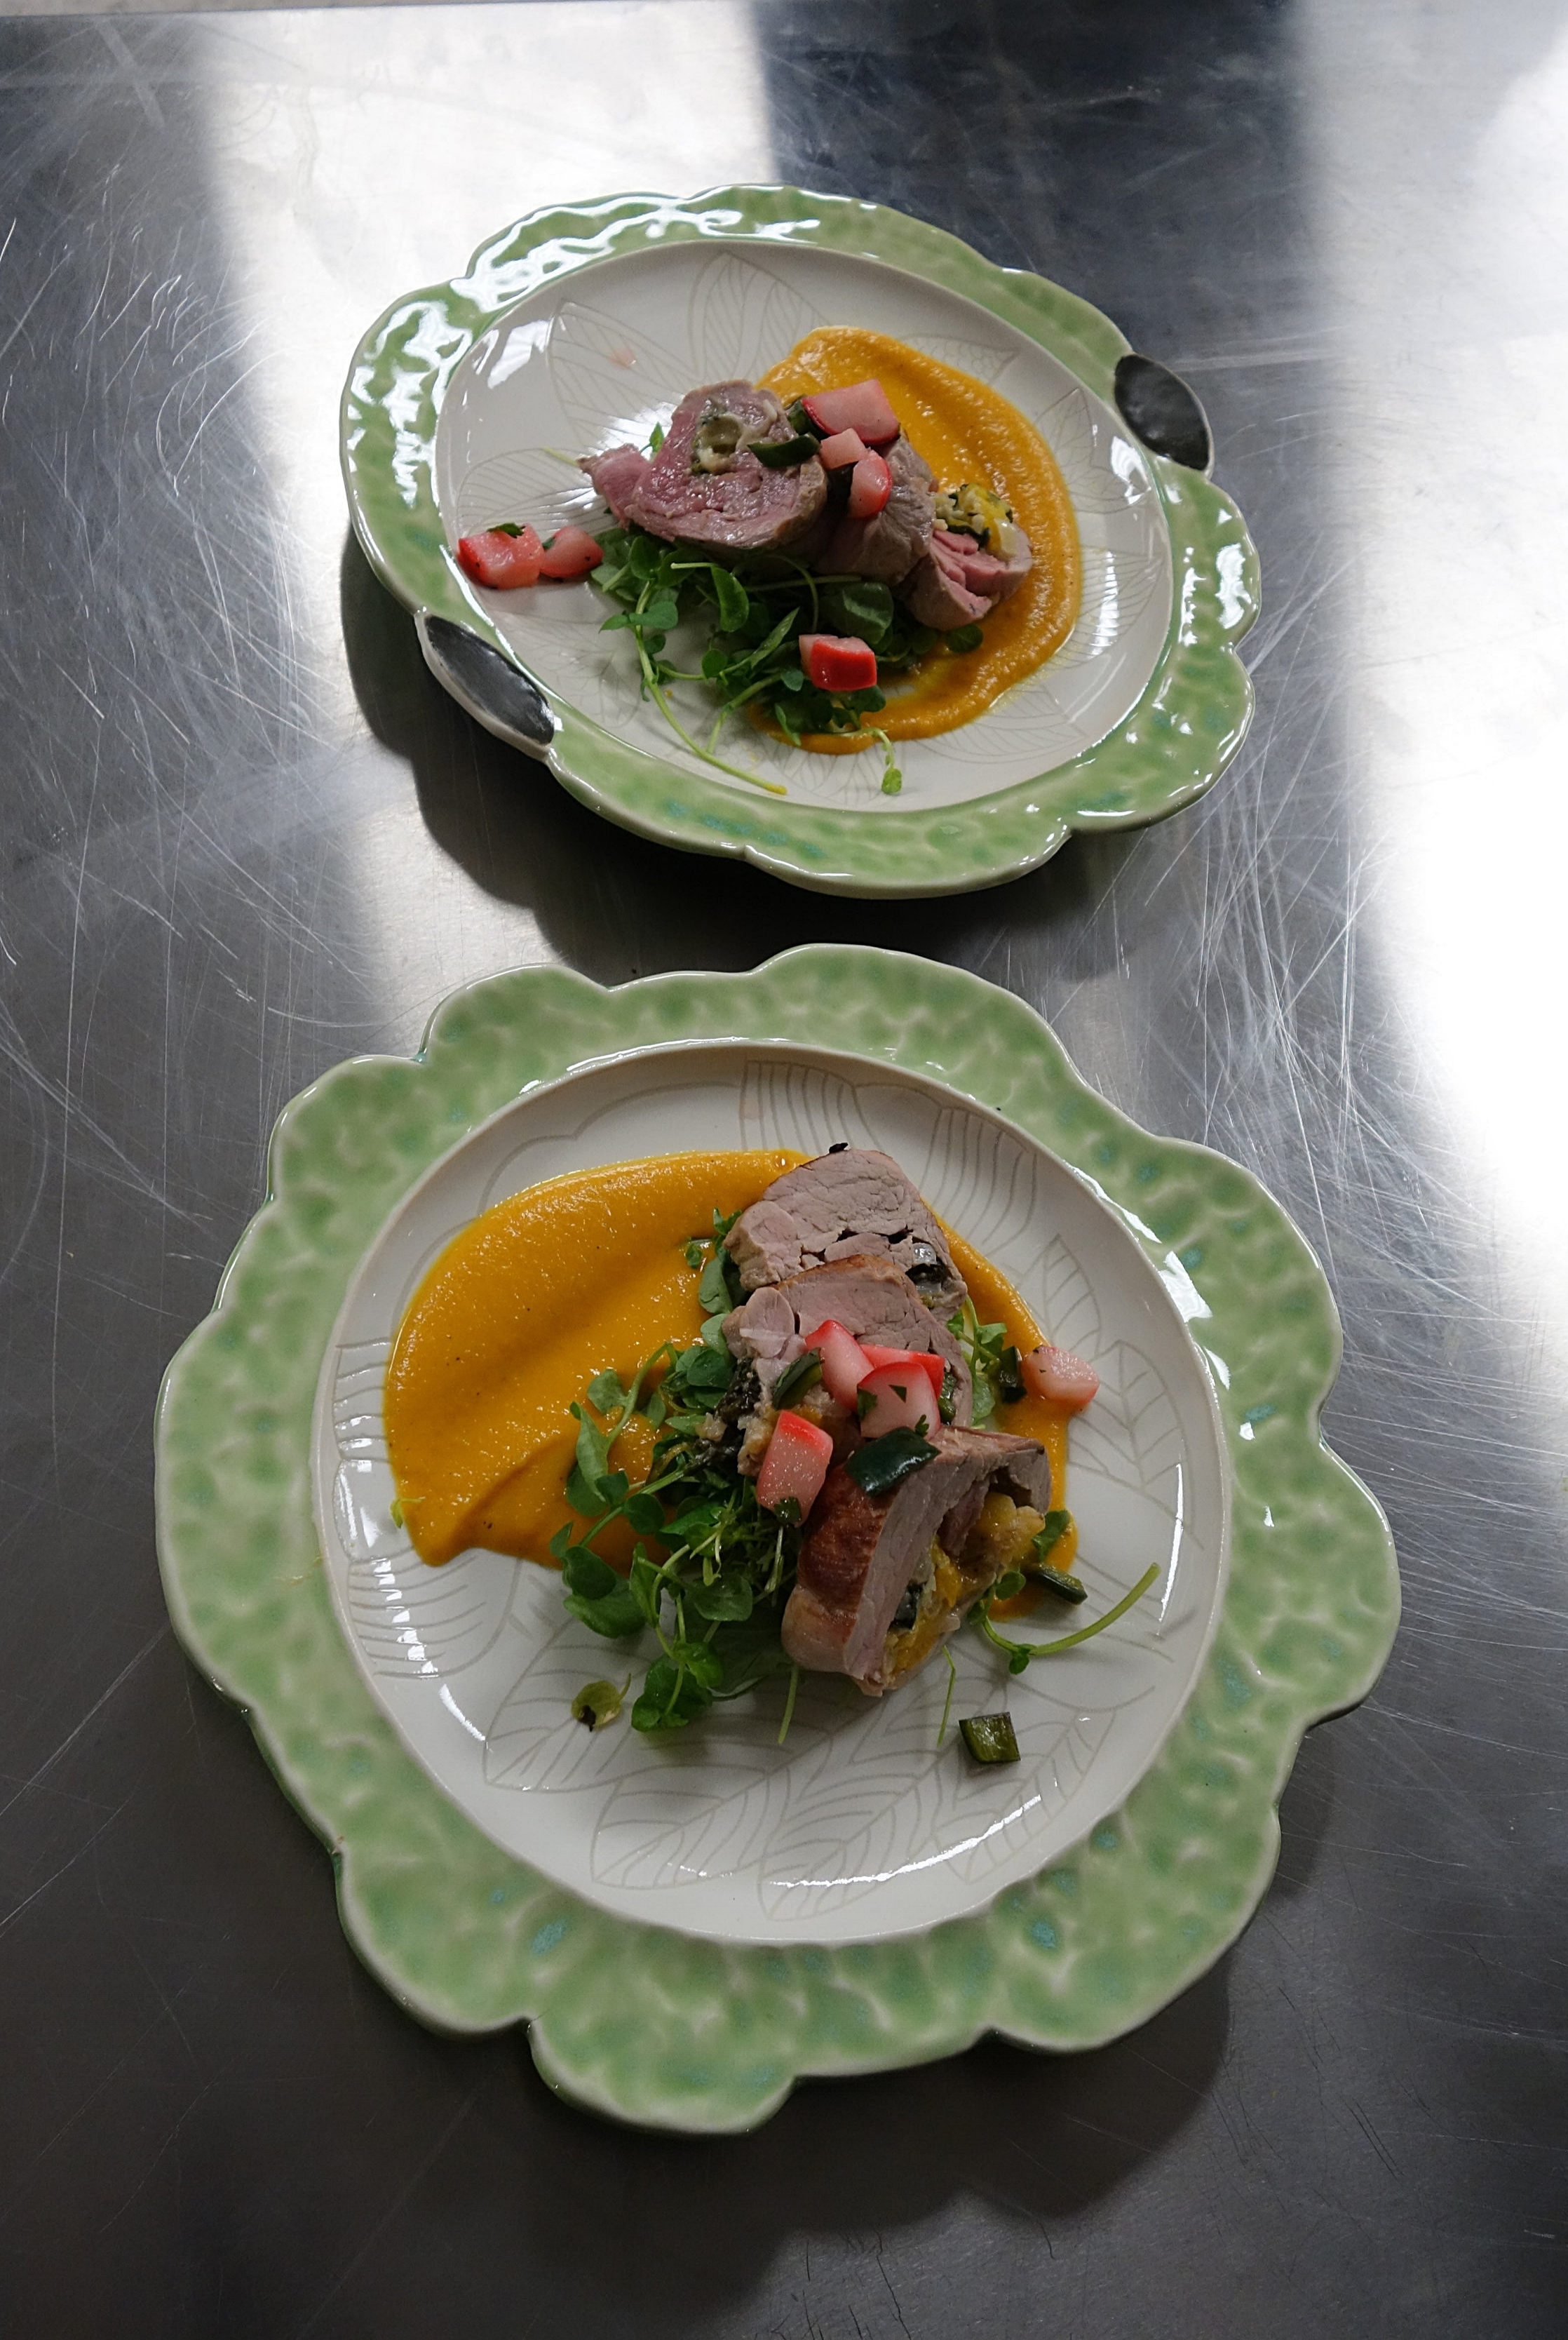 Chef Carrie Eagle and Potter Jen DePaolo